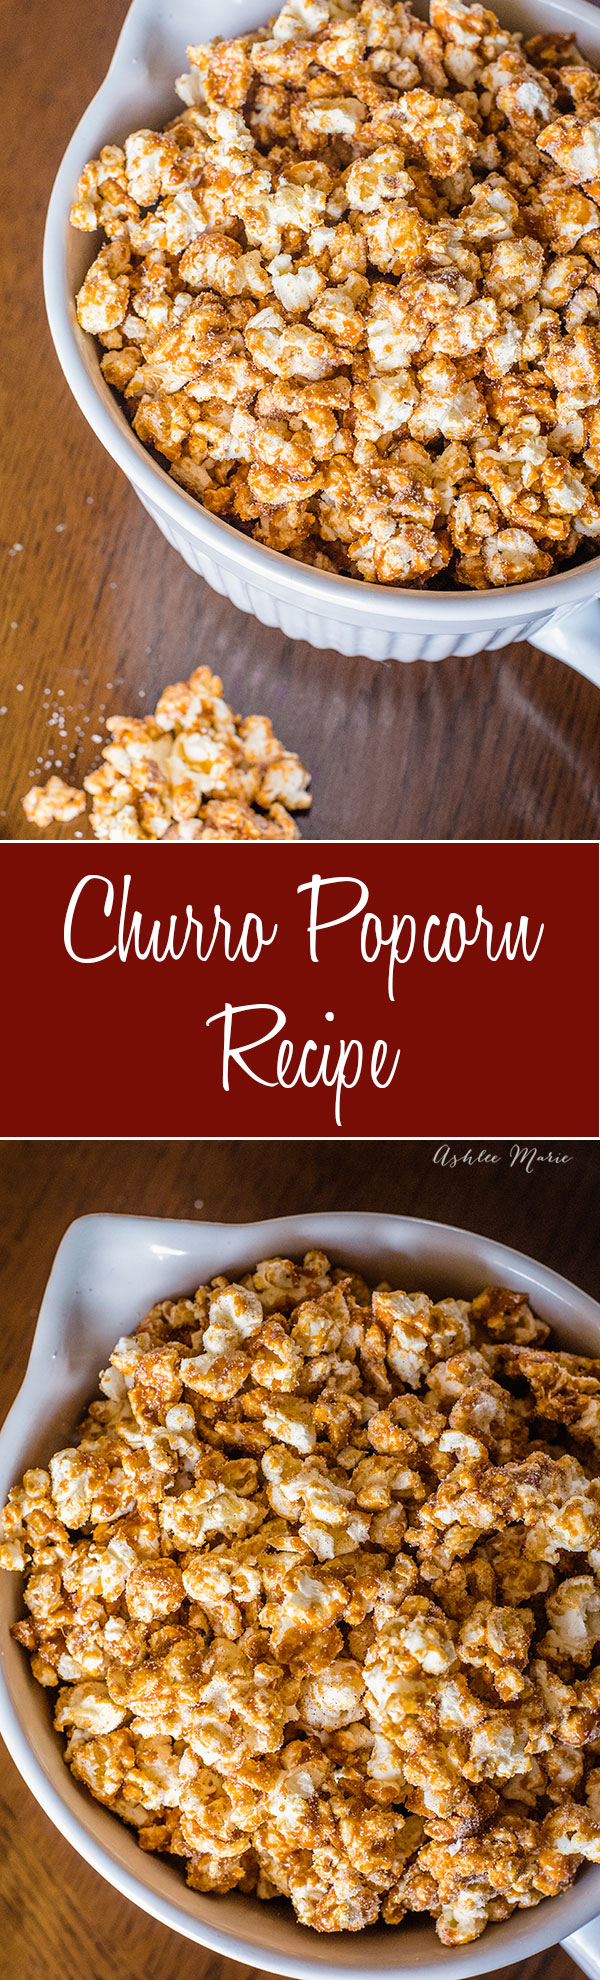 churro popcorn is easy to make and delicious with a crunchy cinnamon candy shell and cinnamon sugar sprinkled on top